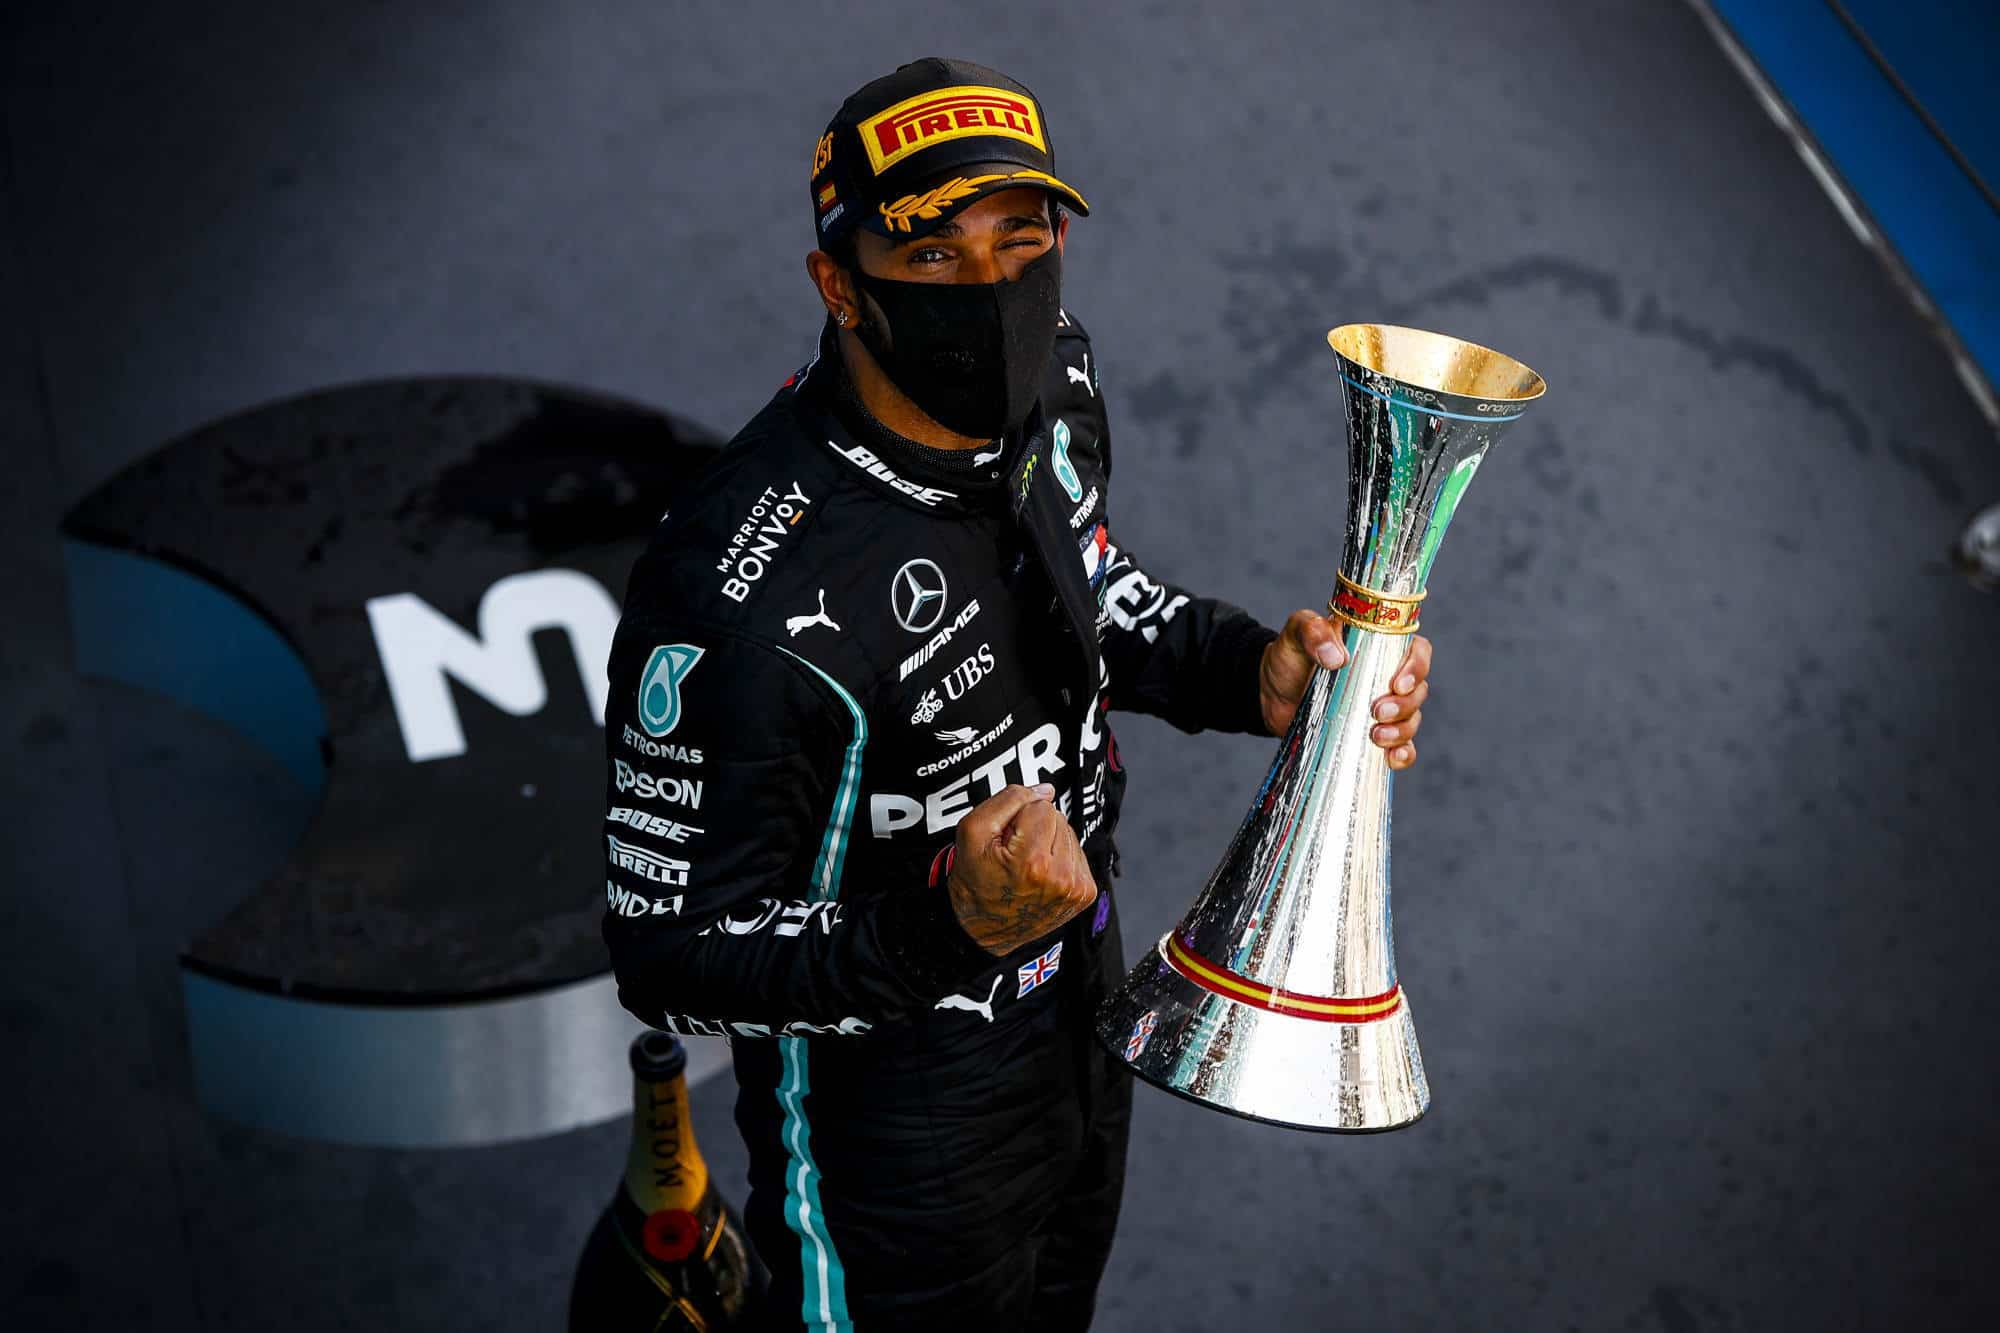 2020 Spanish GP Hamilton after the race with trophy Photo Daimler